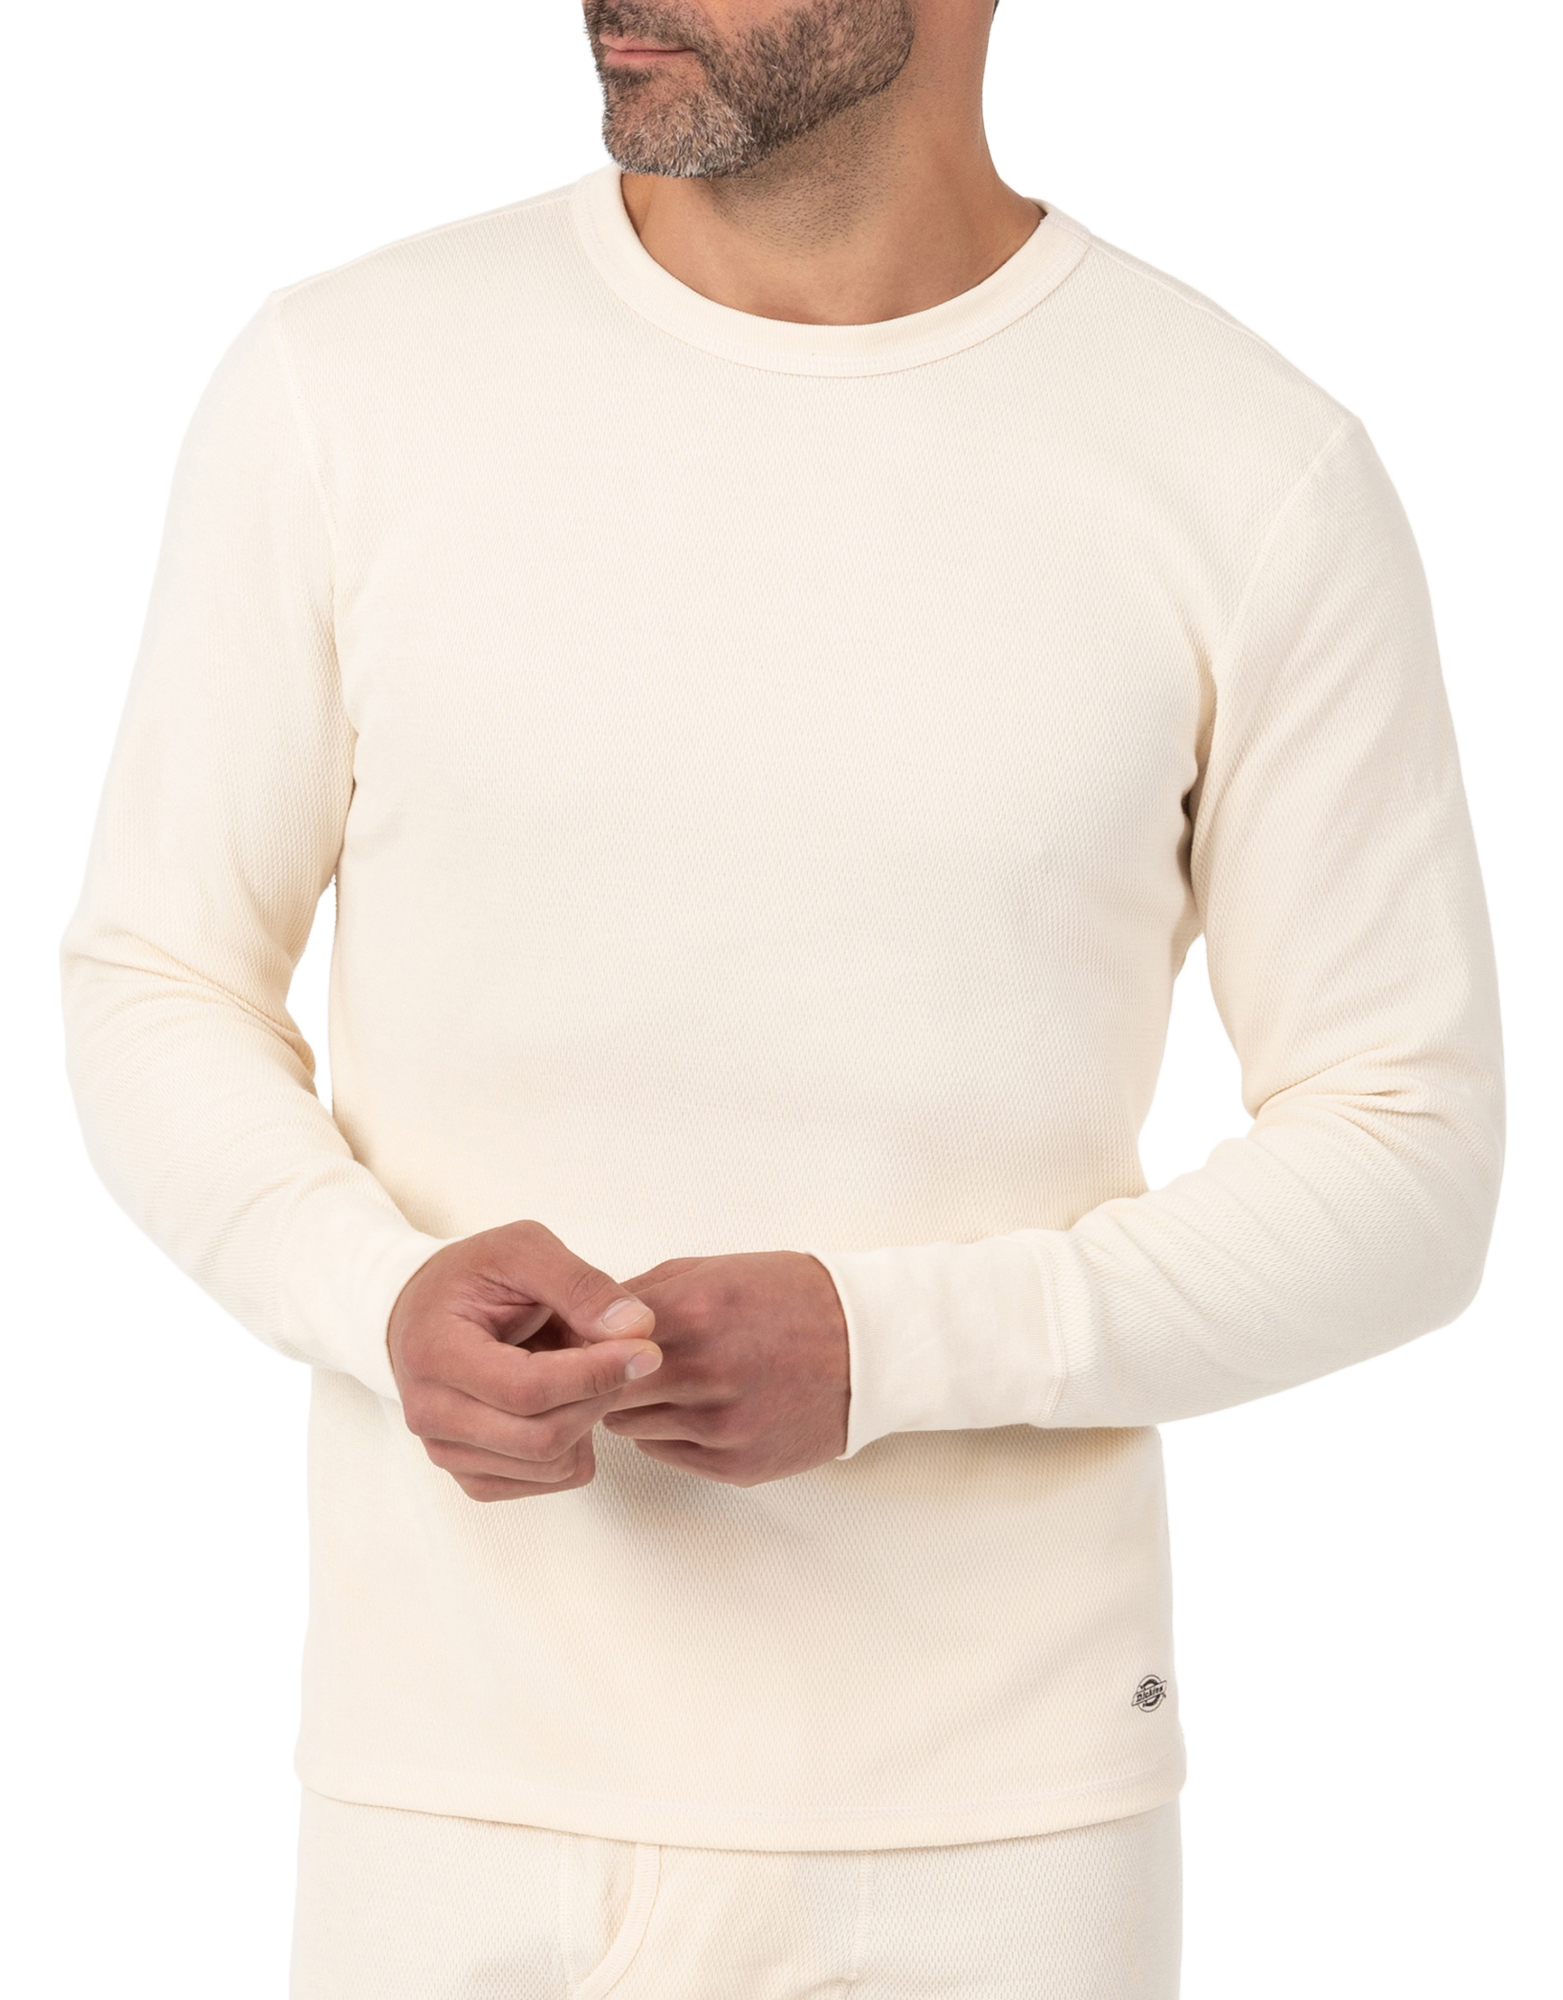 Men's Heavyweight Long Johns Thermal Underwear Top - Natural Beige (NT)